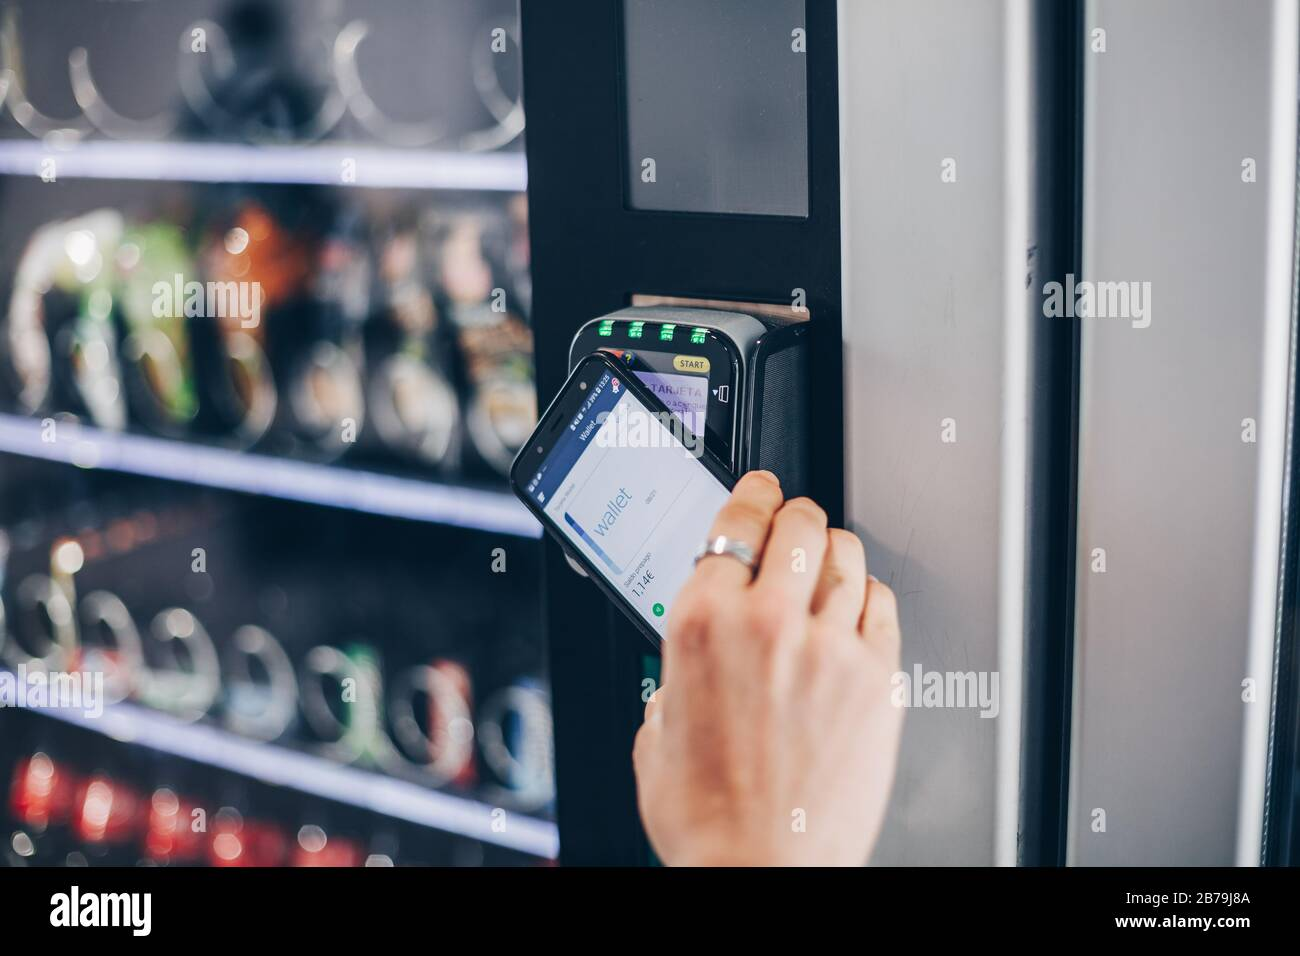 Student using the contactless payment method with mobile phone in a vending machine. Stock Photo